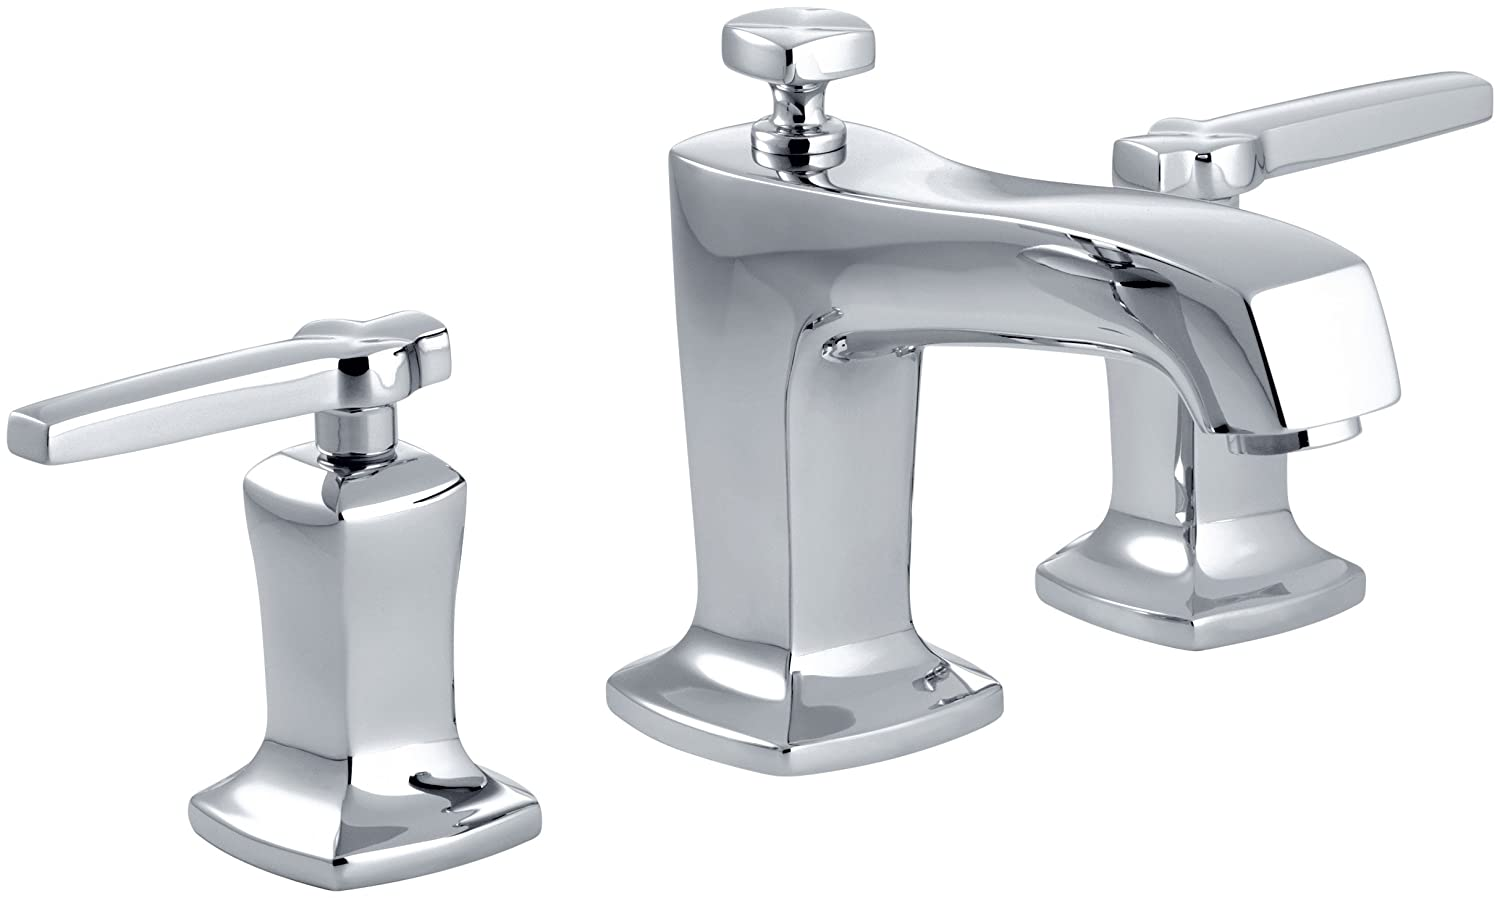 Kohler K 16232 4 Cp Margaux Widespread Lavatory Faucet Polished Chrome Touch On Bathroom Sink Faucets Amazon Com